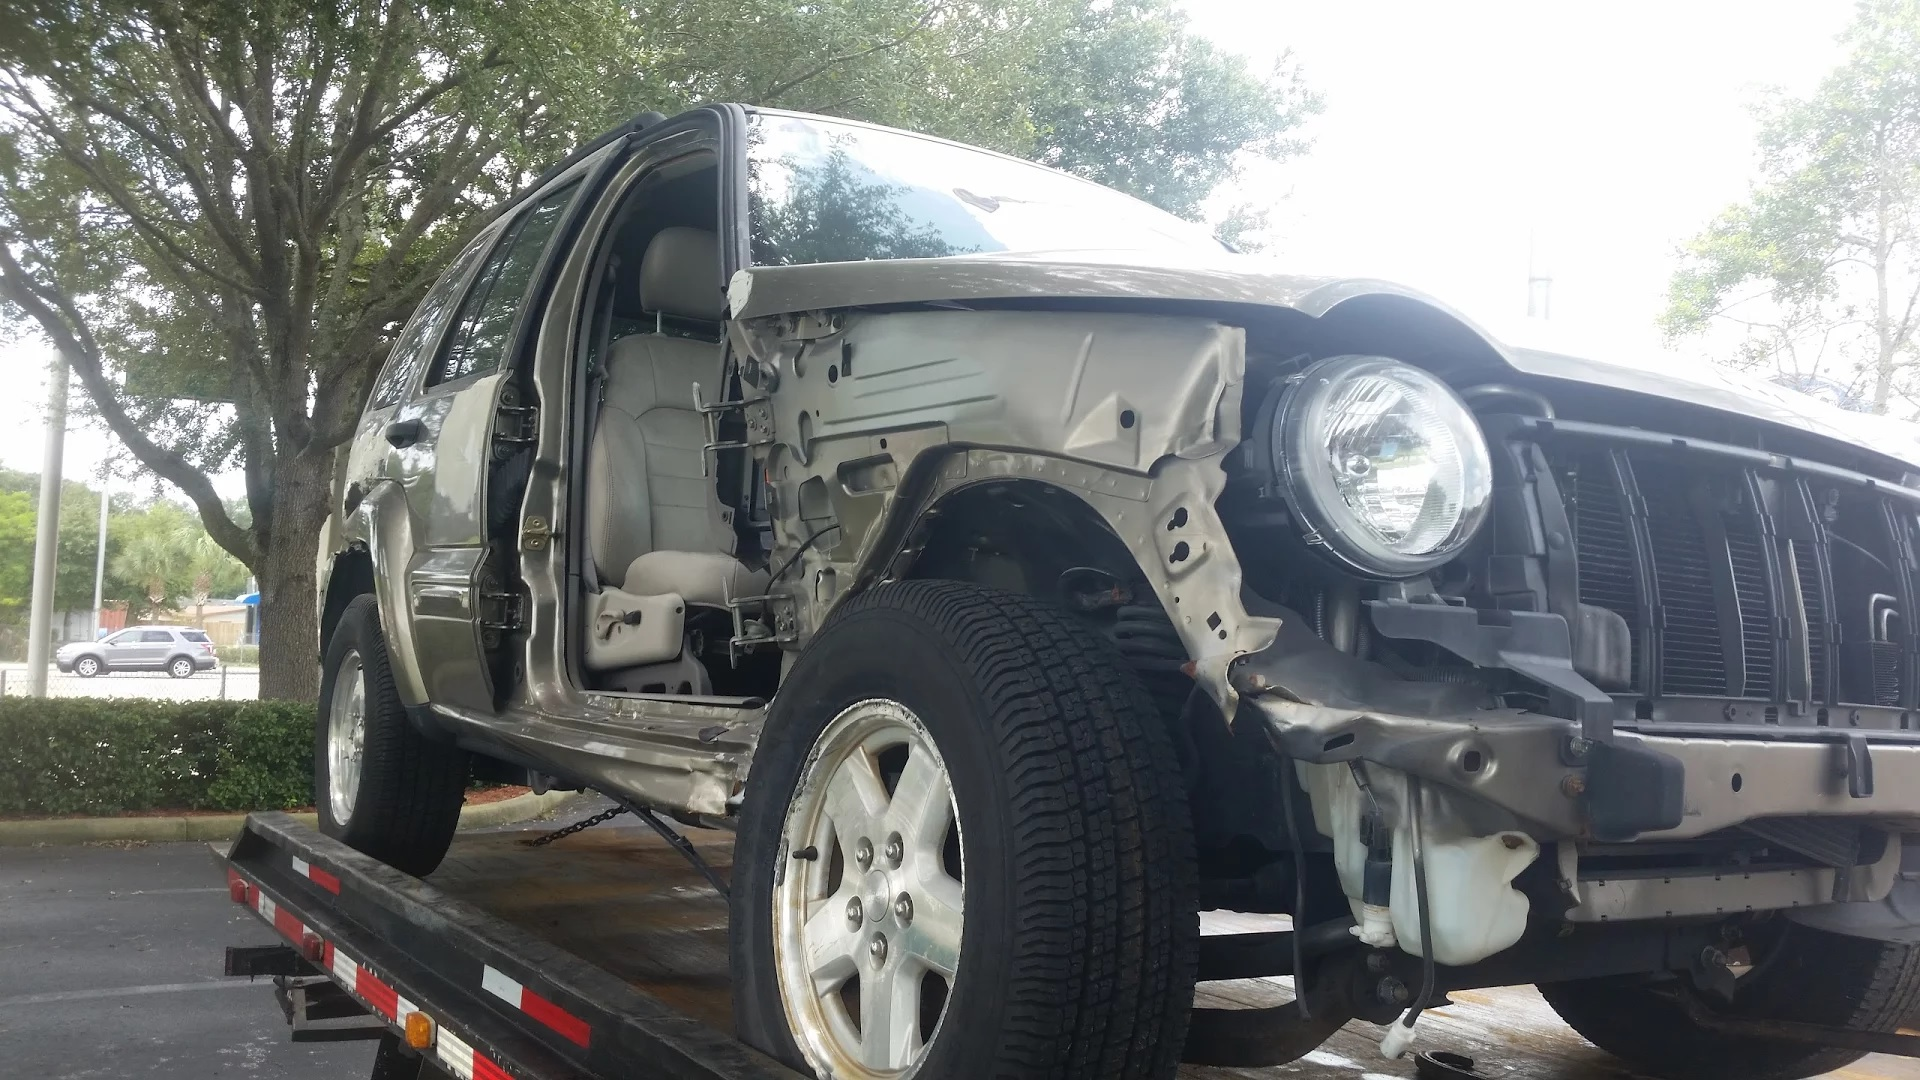 2003 Jeep Liberty, some assembly required